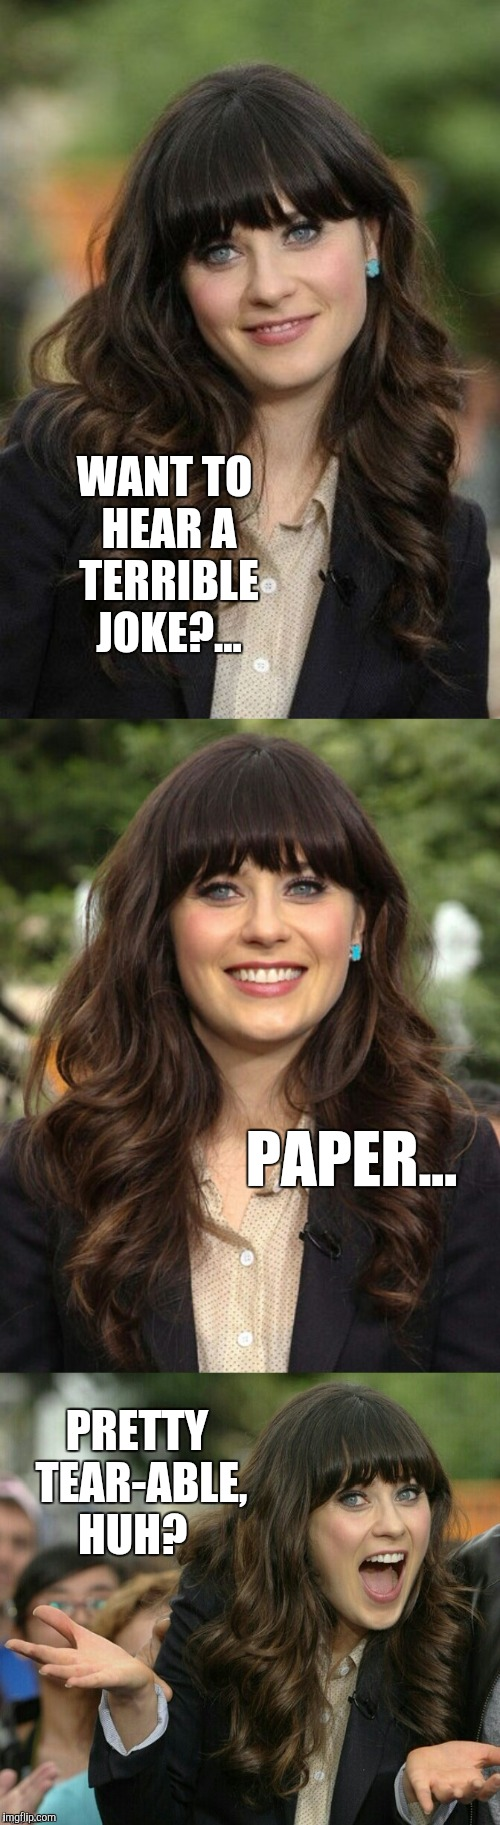 Zooey Deschanel joke template | WANT TO HEAR A TERRIBLE JOKE?... PAPER... PRETTY TEAR-ABLE, HUH? | image tagged in zooey deschanel joke template,jbmemegeek,bad puns,zooey deschanel | made w/ Imgflip meme maker